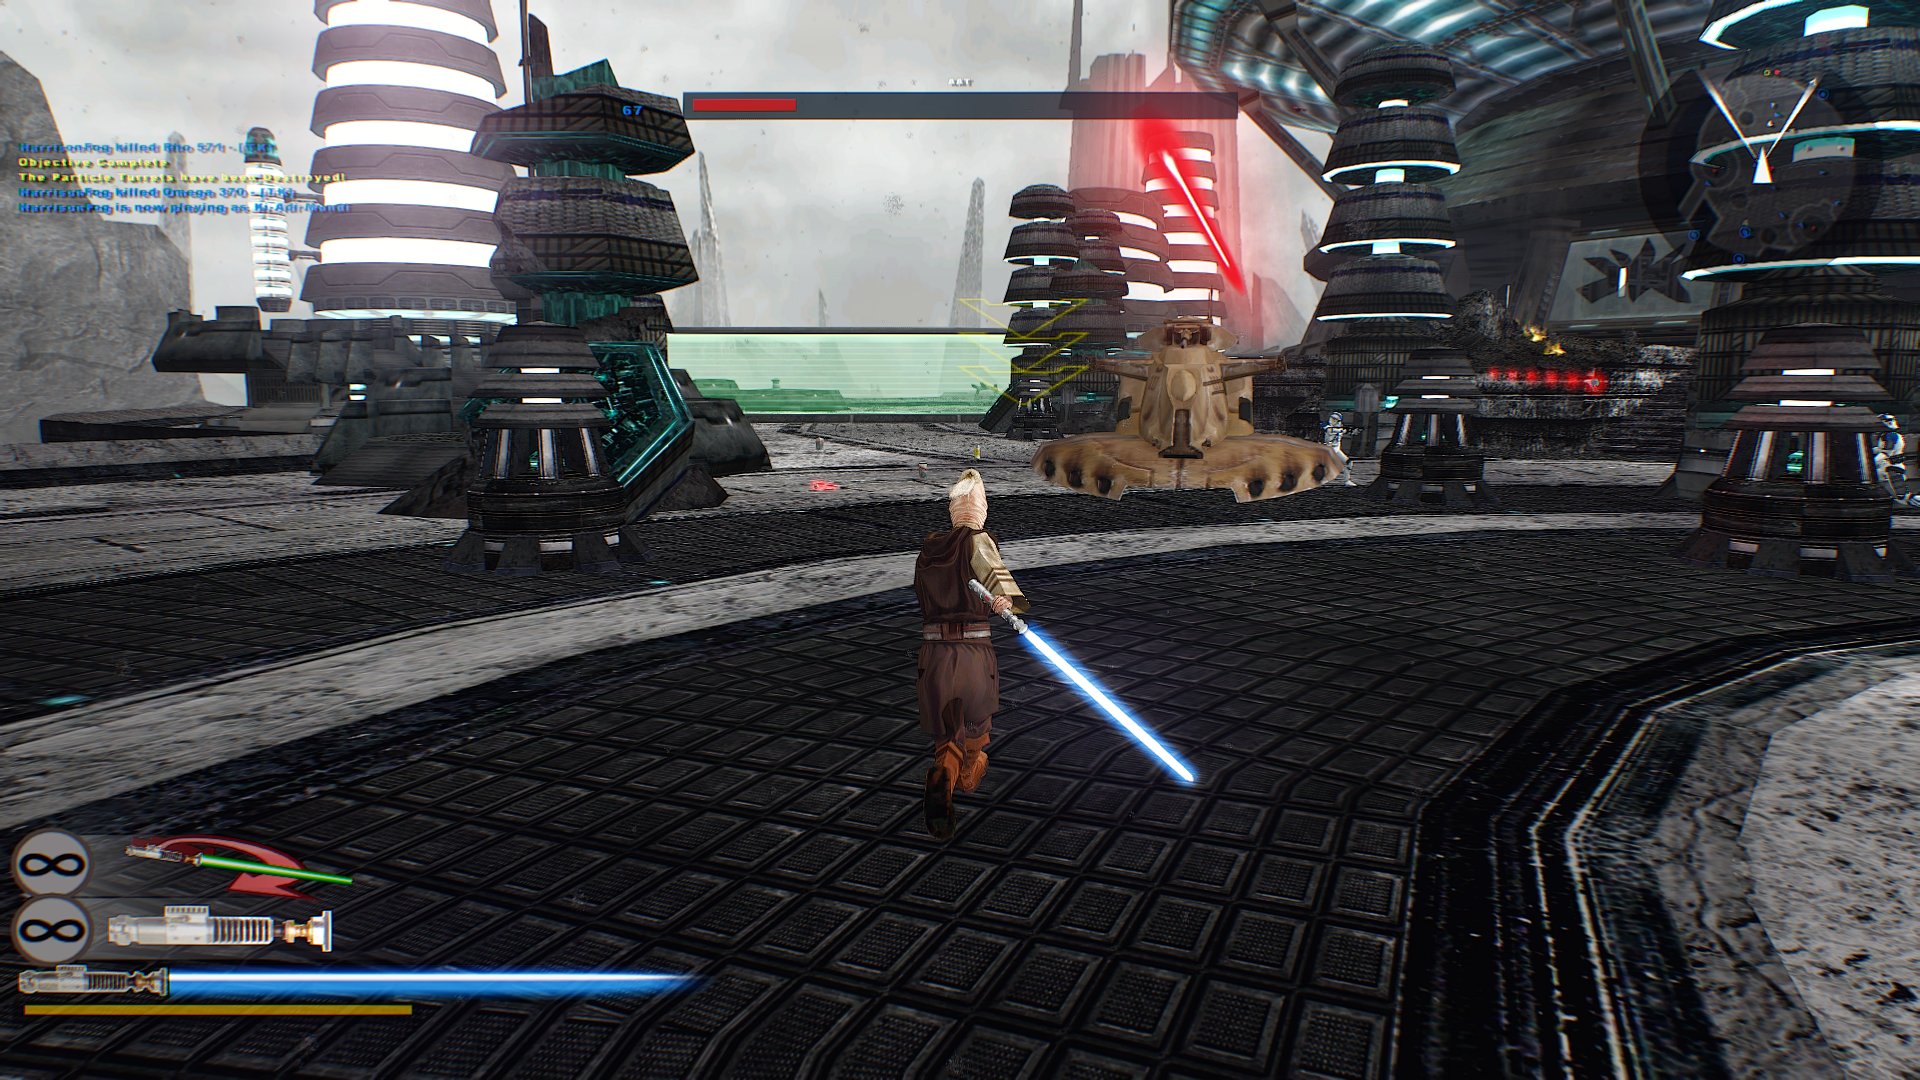 Star Wars: Battlefront 2 - Realistic Maps Mod - Star Wars: Battlefront 2 Моды